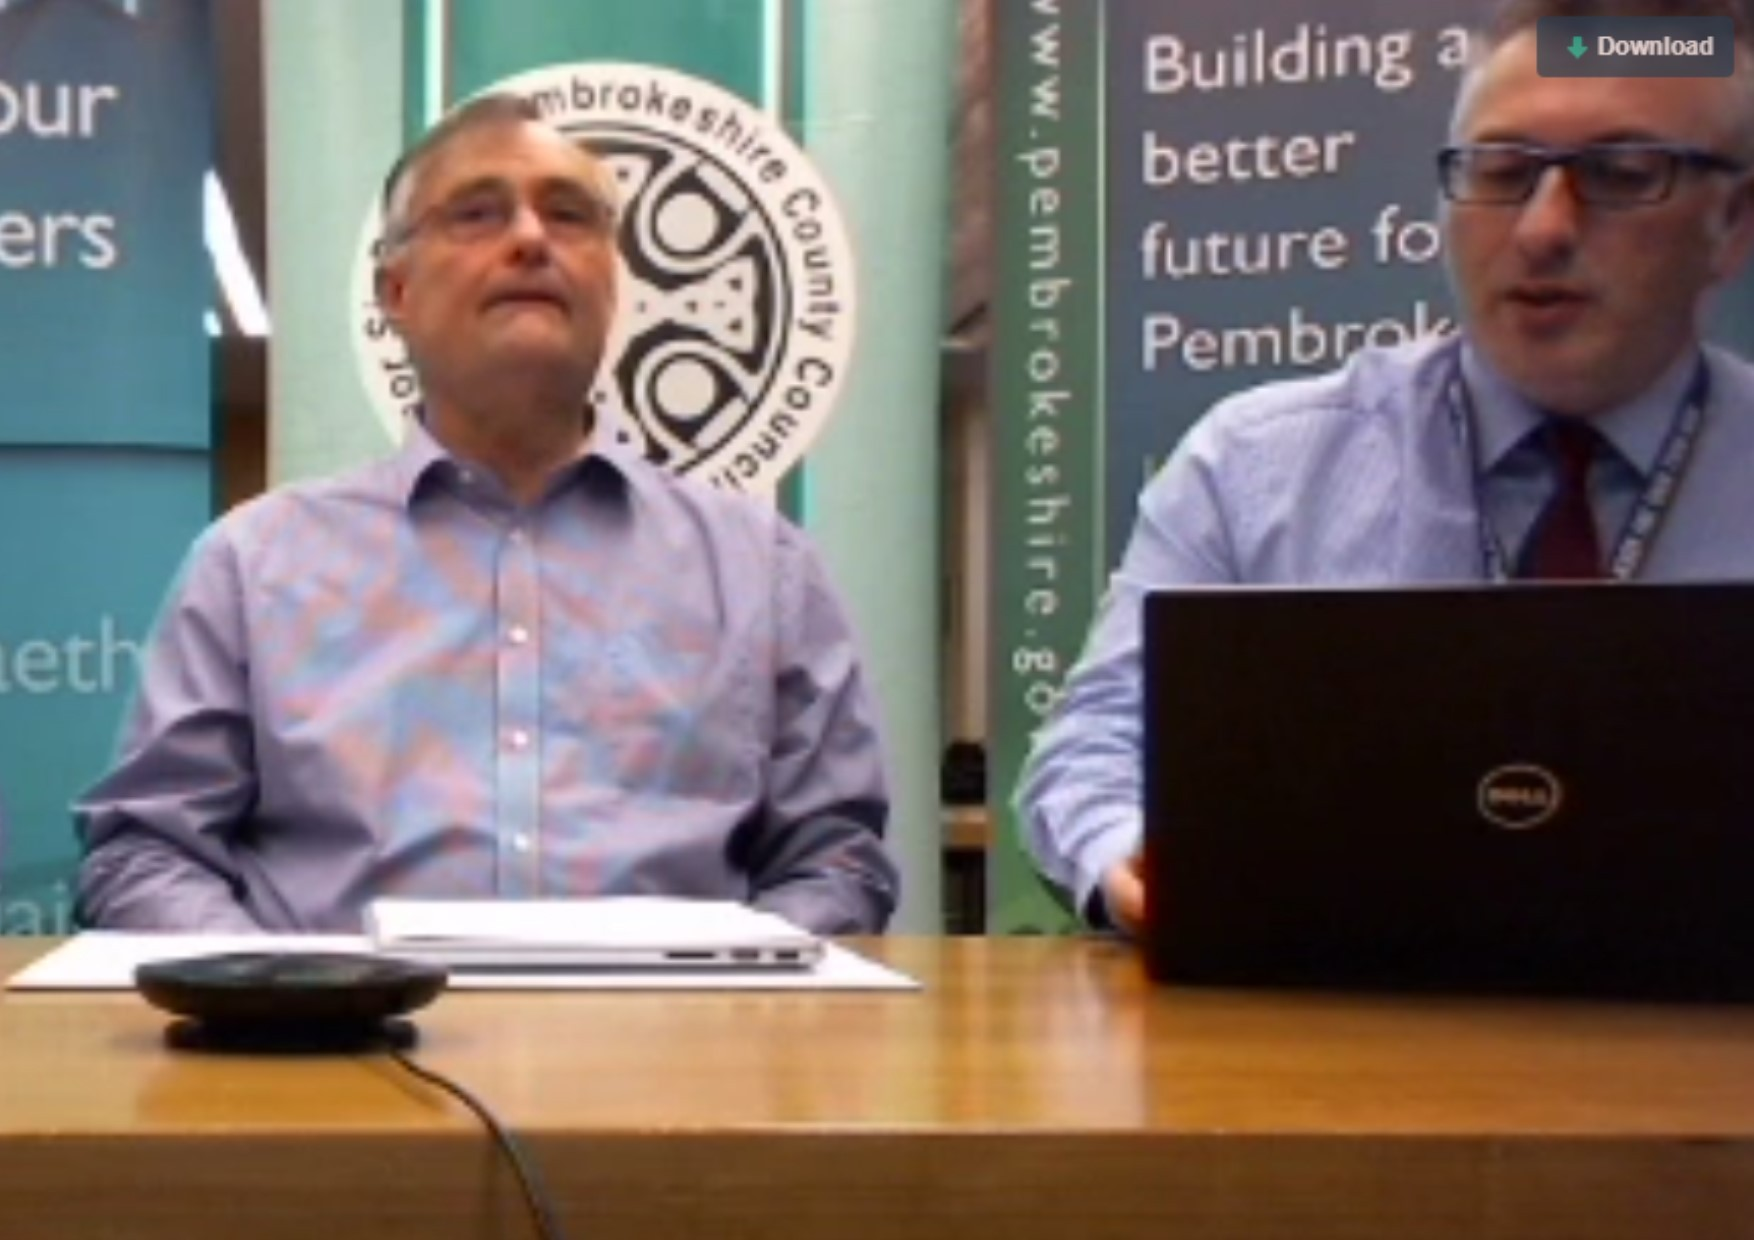 Cllr Bob Kilmister (left) answered questions from the public about the budget for 2019-20.